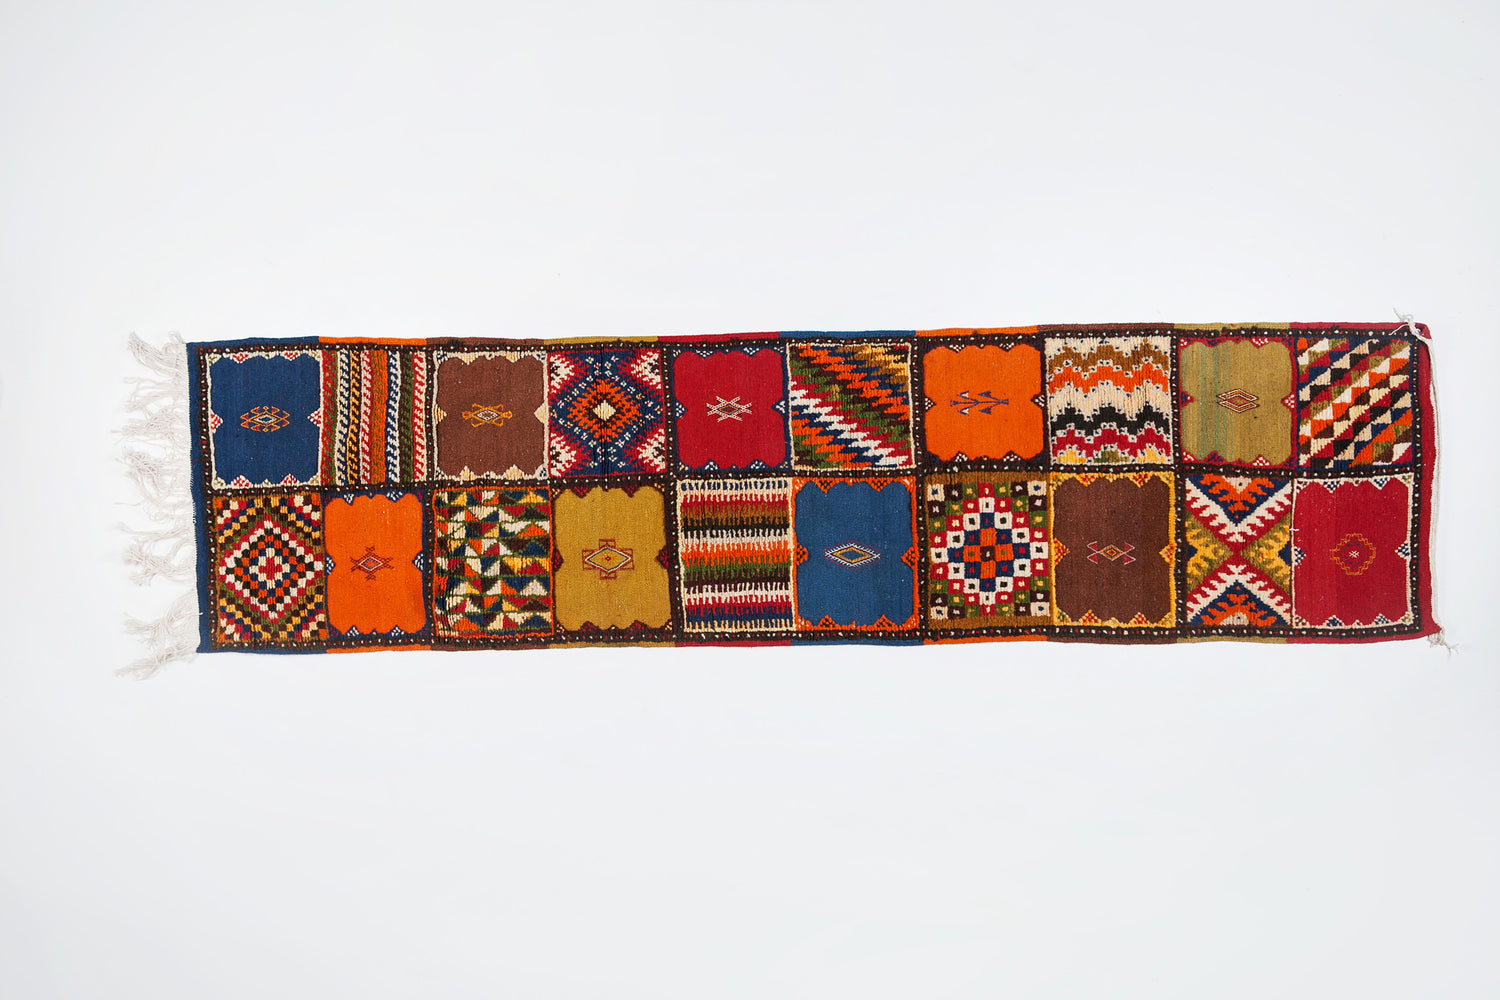 Berber Rug - Runner with Handwoven Patchwork Pattern